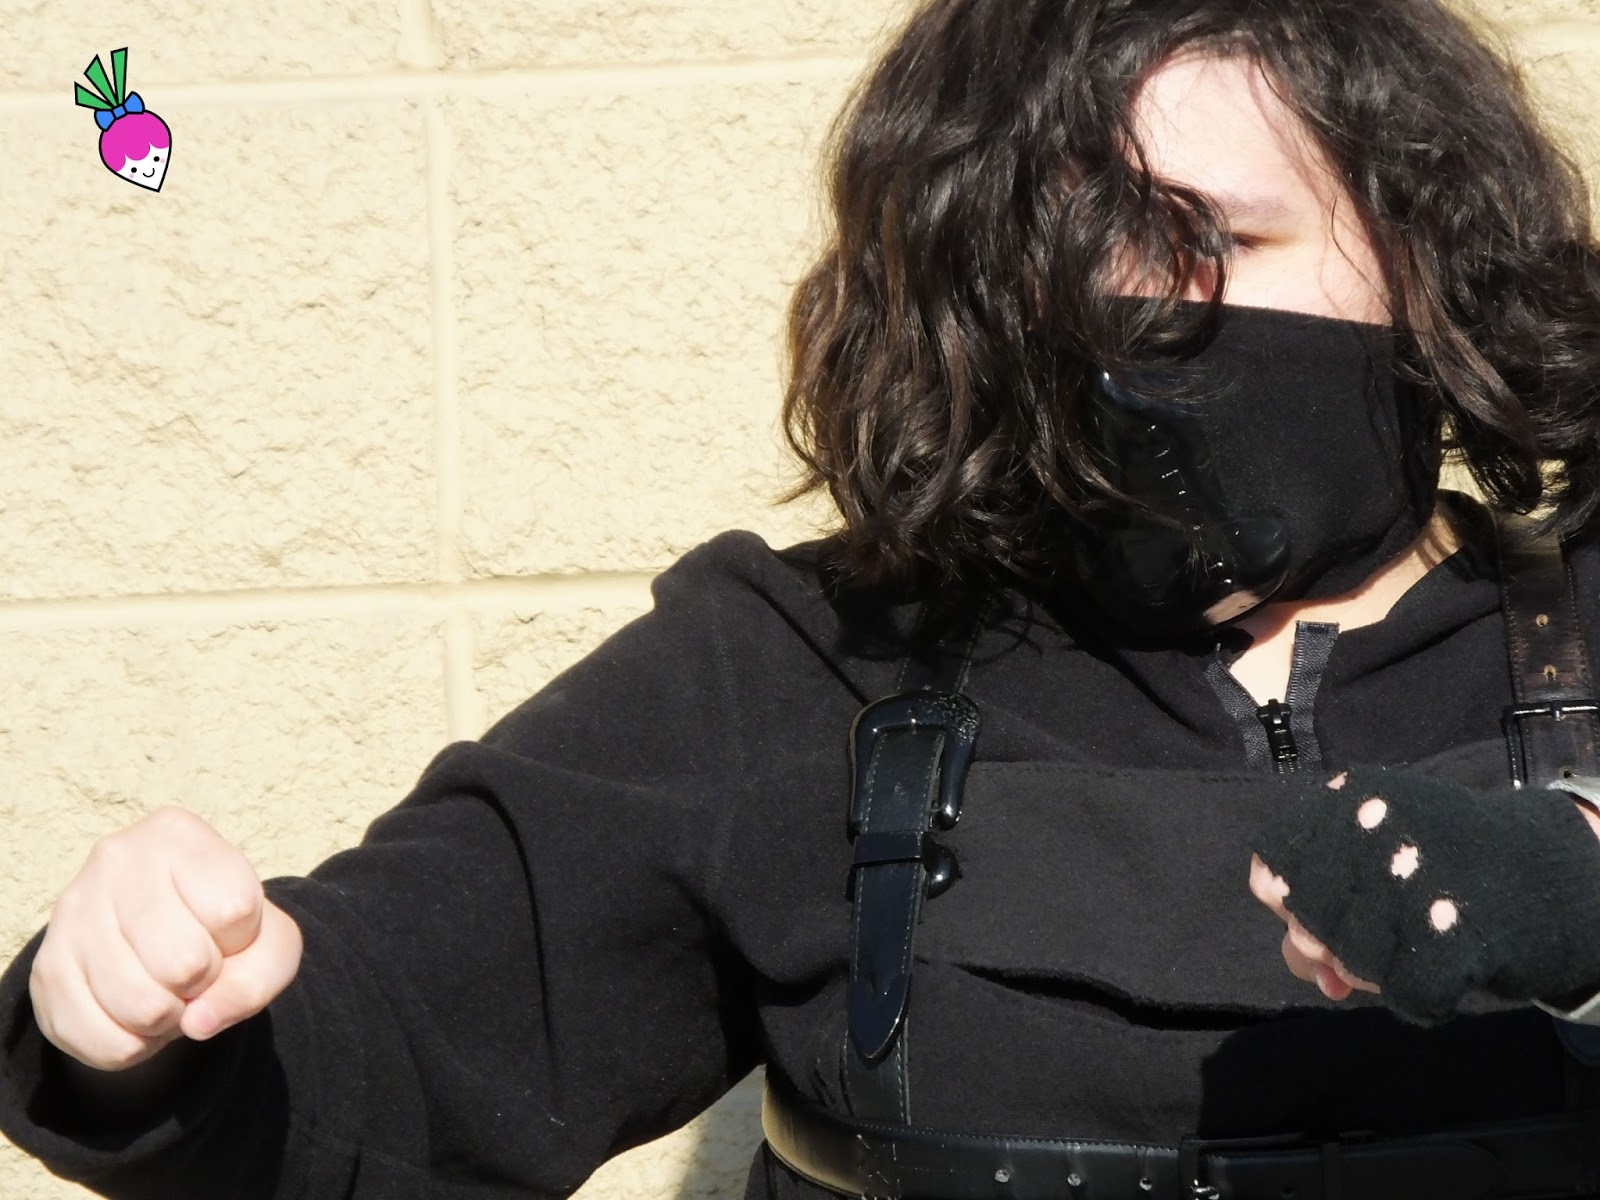 The Amazing Turnip Girl as The Winter Soldier - creative upcycled costume making